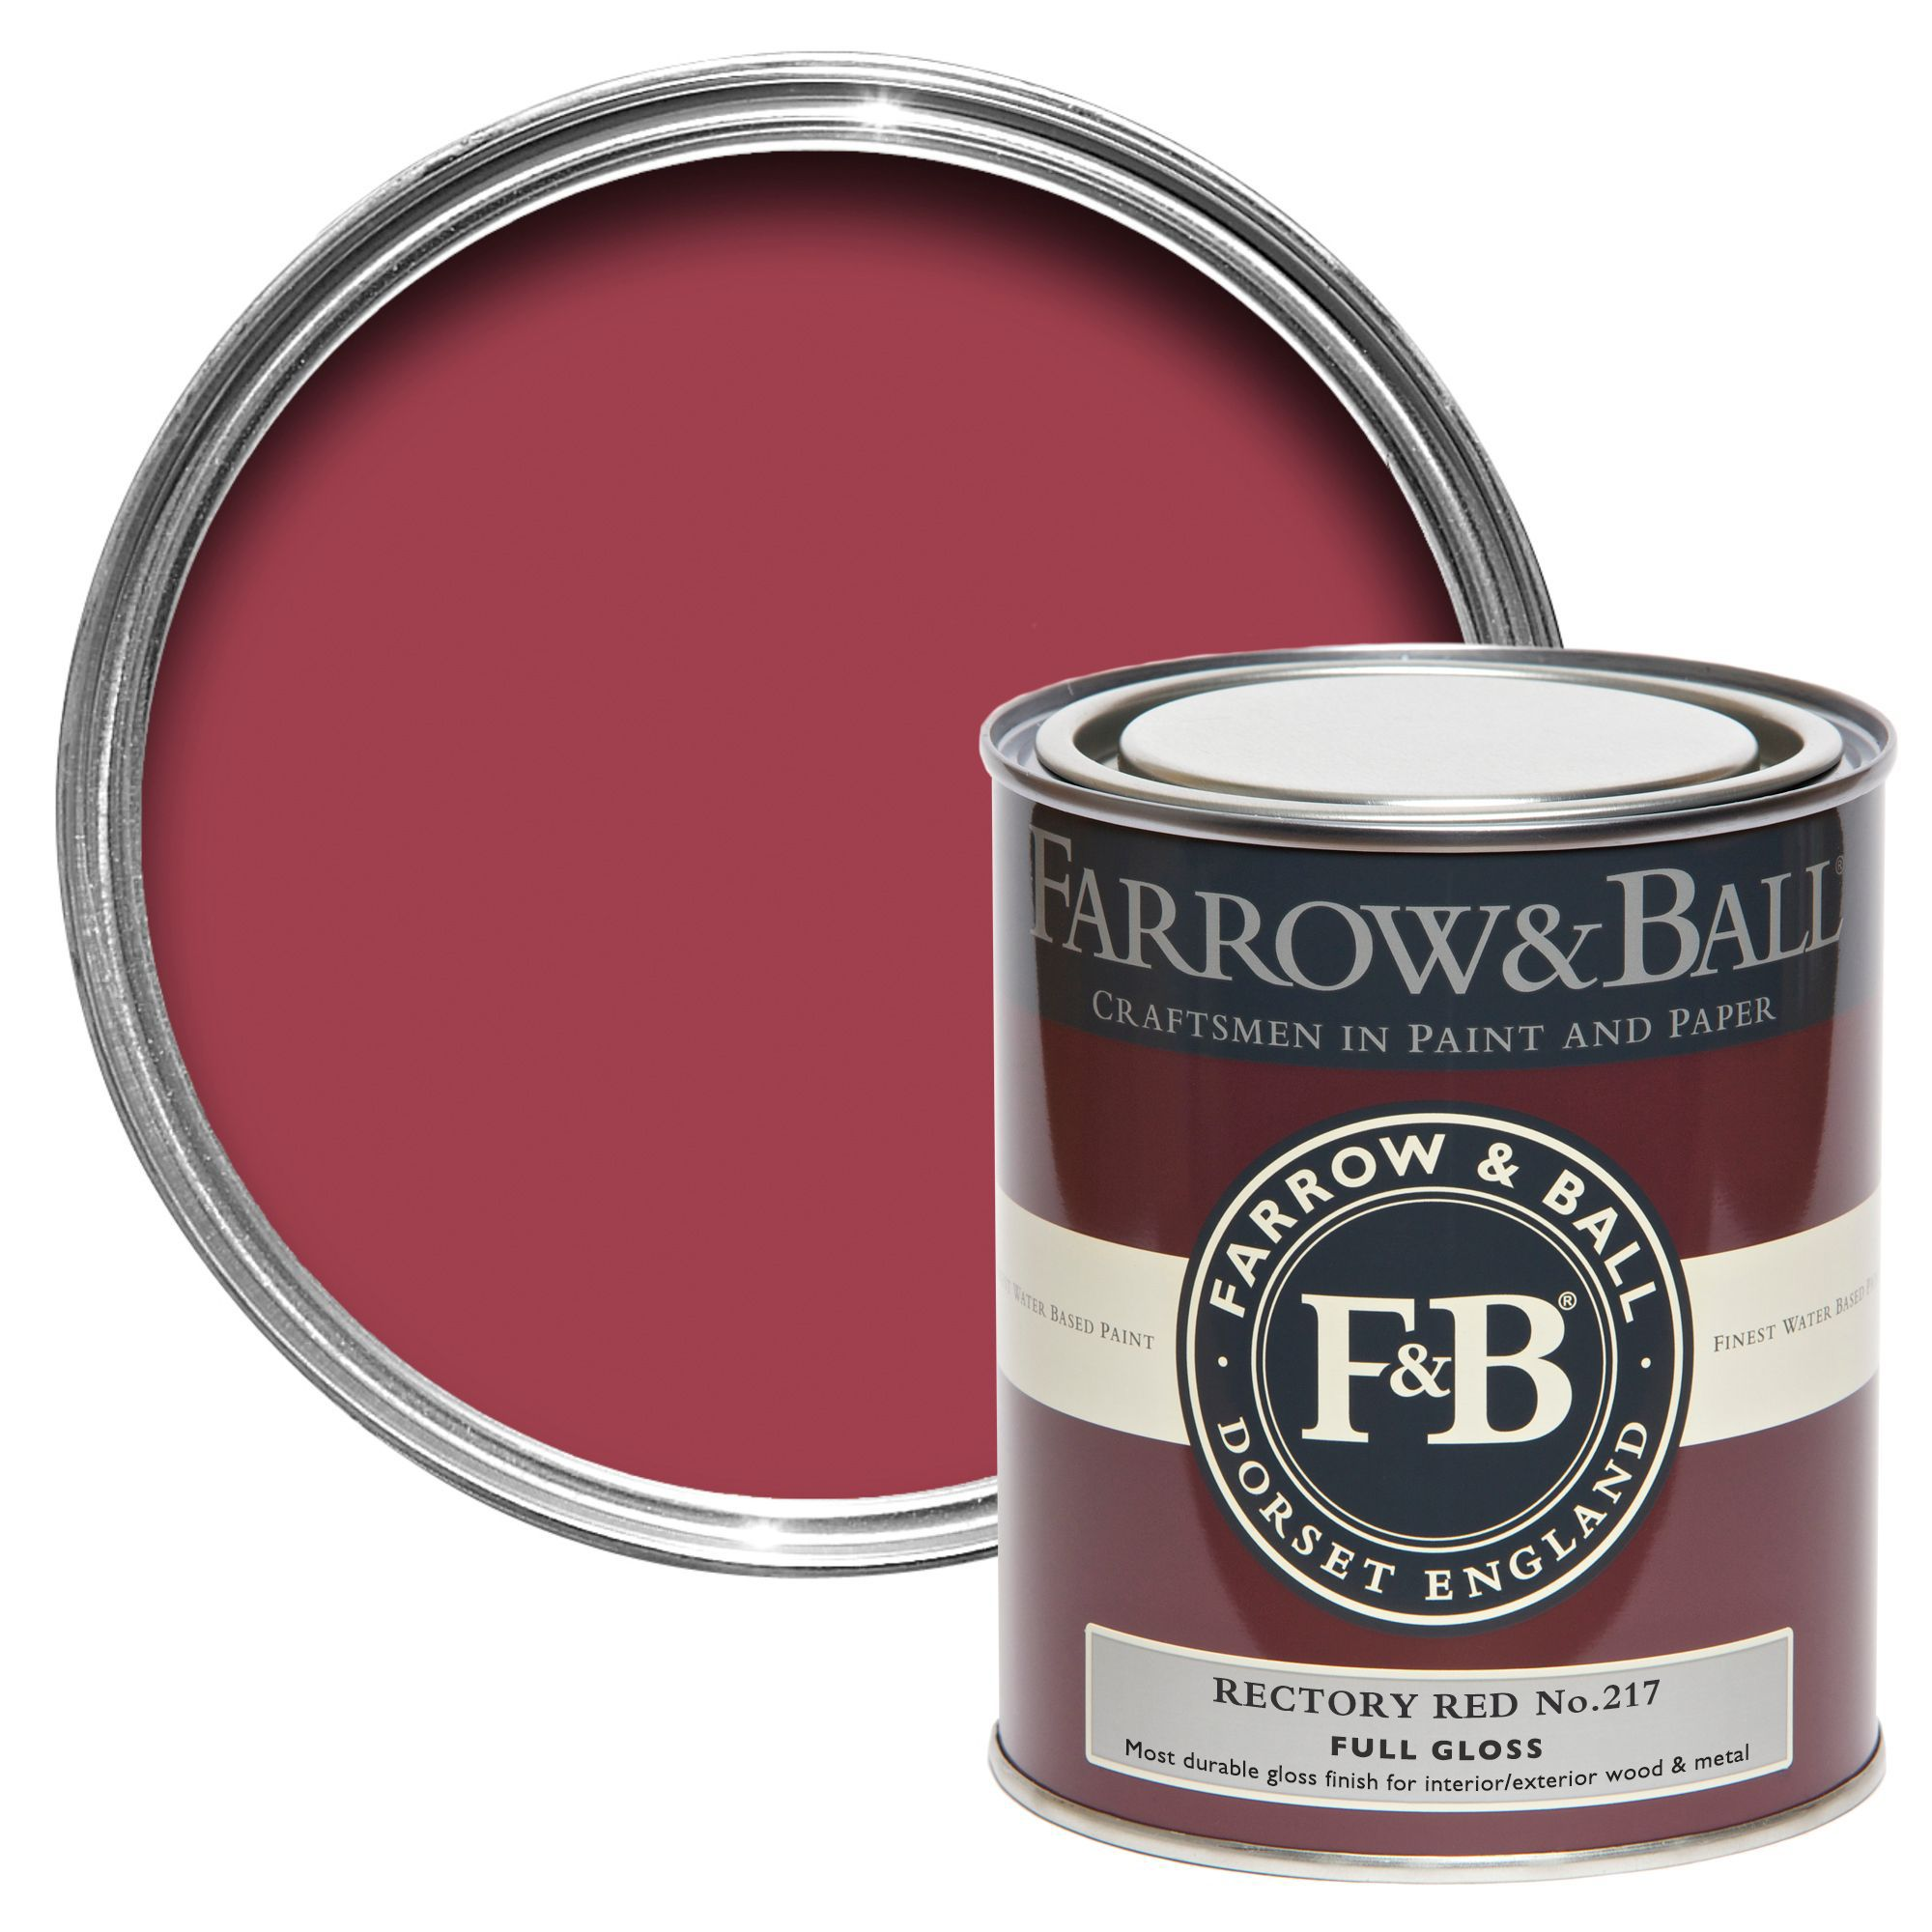 Farrow & Ball Interior & Exterior Rectory Red No217 Gloss